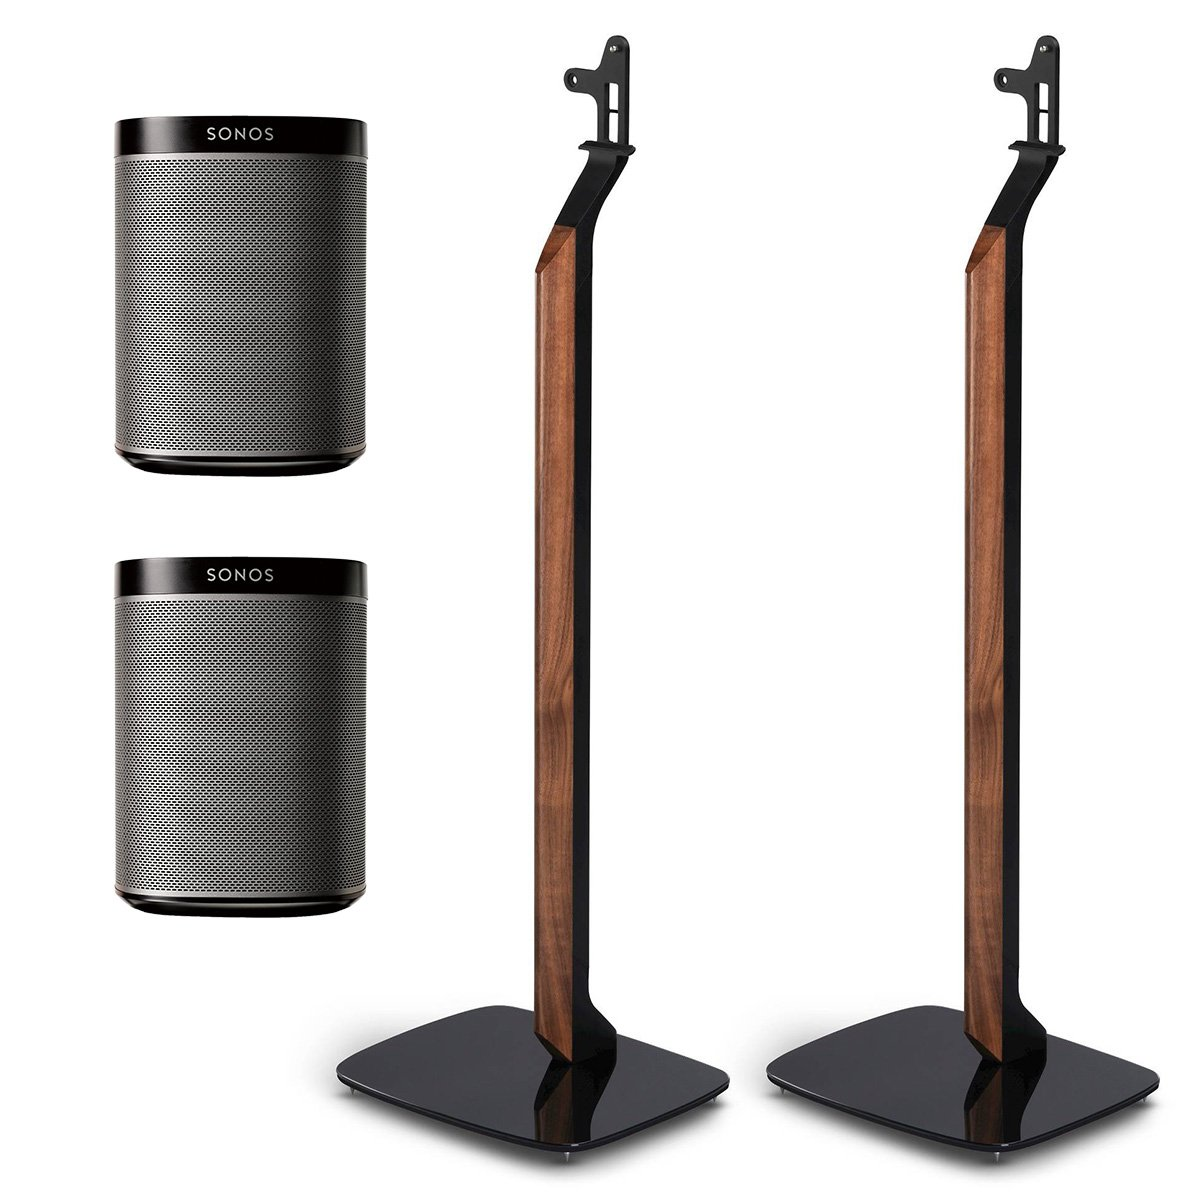 Sonos PLAY:1 All-In-One Wireless Speakers with Flexson Premium Floor Stands - Pair (Black)